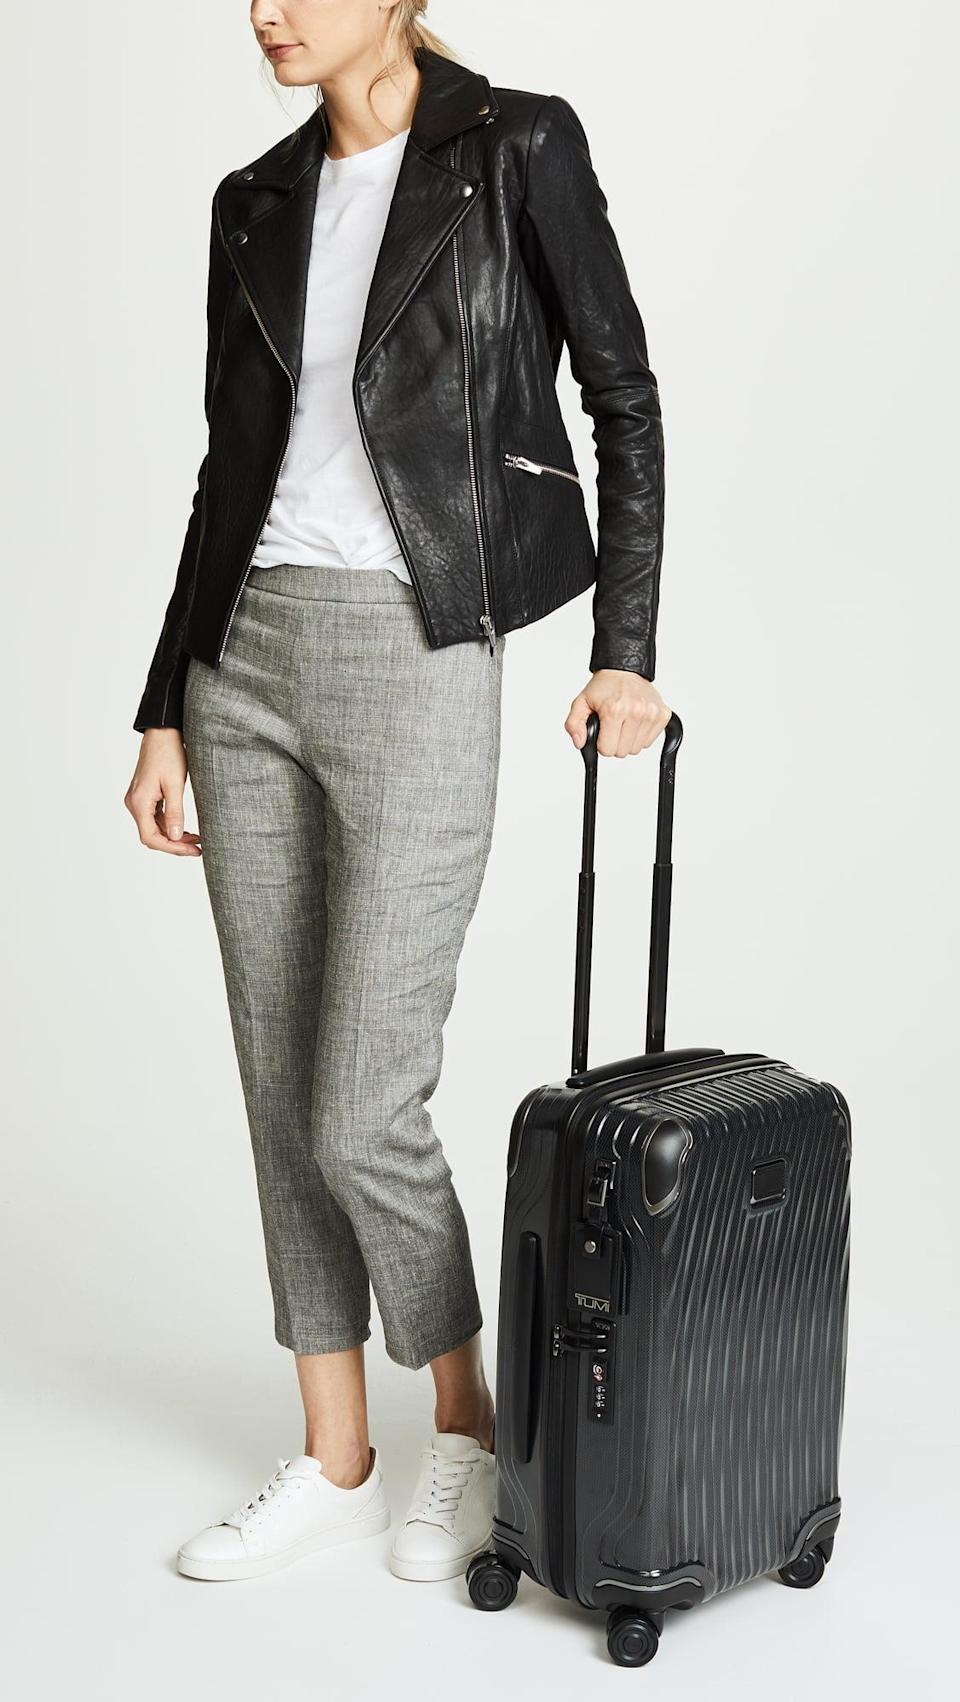 <p>This <span>Tumi Latitude International Carry-On Suitcase</span> ($599, originally $750) is just over five pounds, so it's great for international travel. Plus, it's so luxurious. </p>